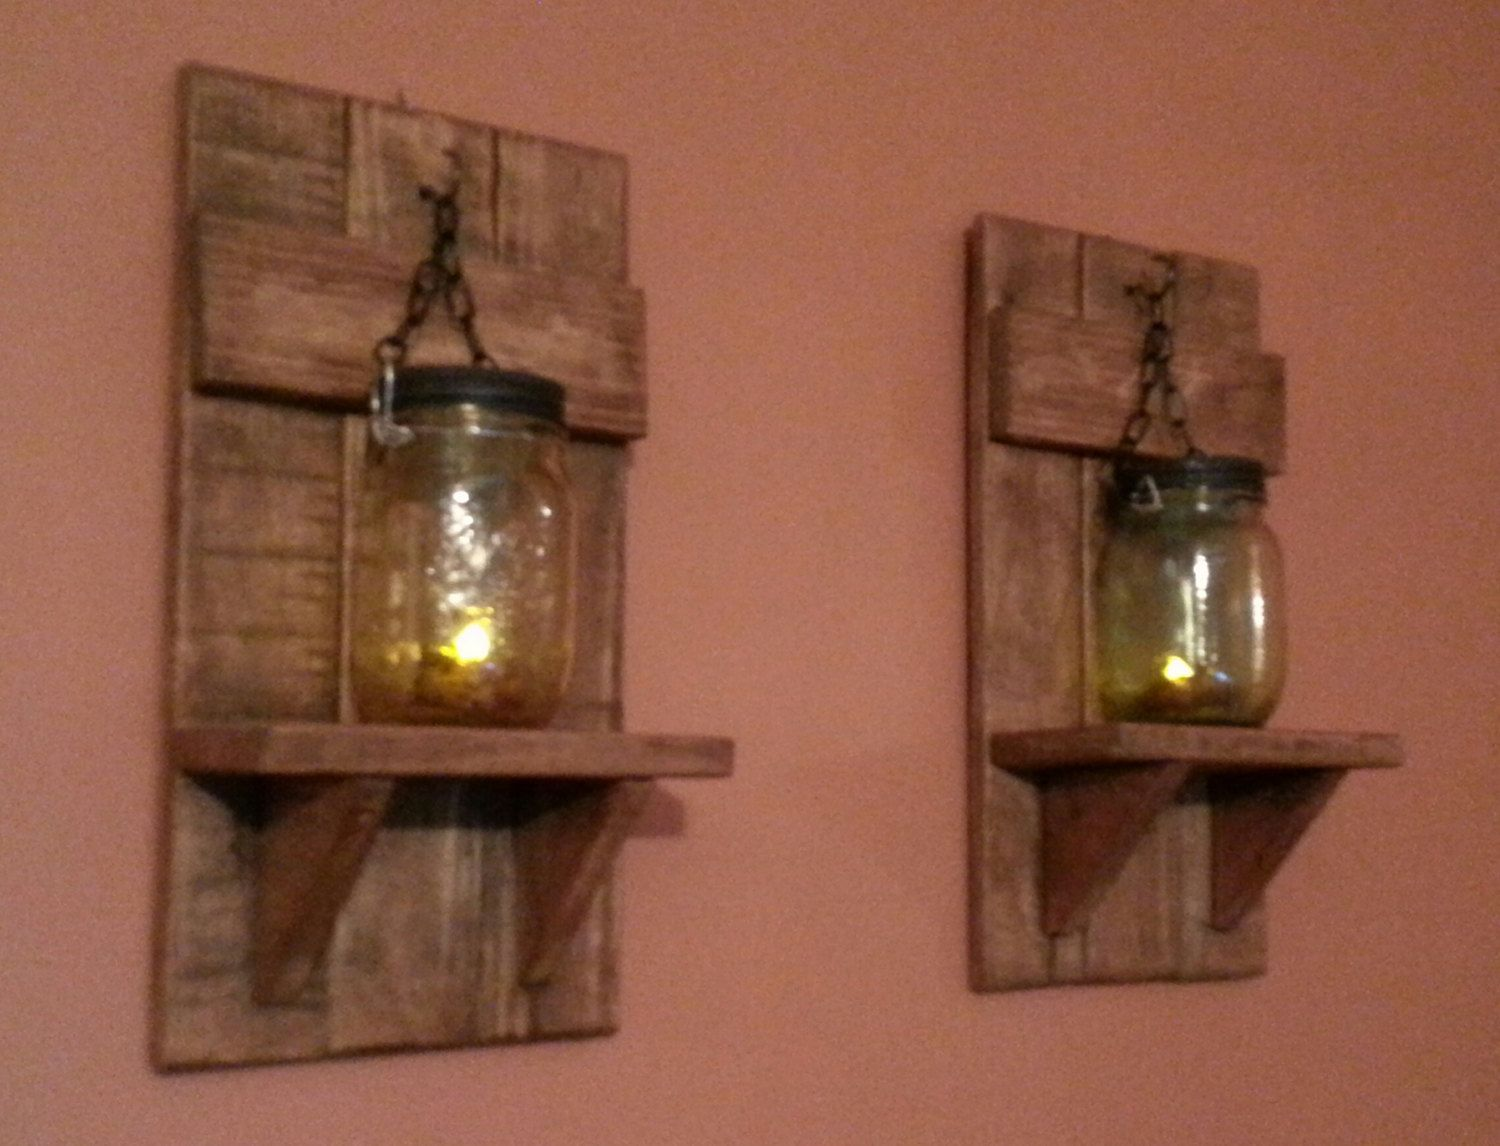 One has an amber colored mason jar that has been turned into a mason jar wall candle holders rustic candle holders country decor reclaimed wood candle holder priced 1 each amipublicfo Gallery